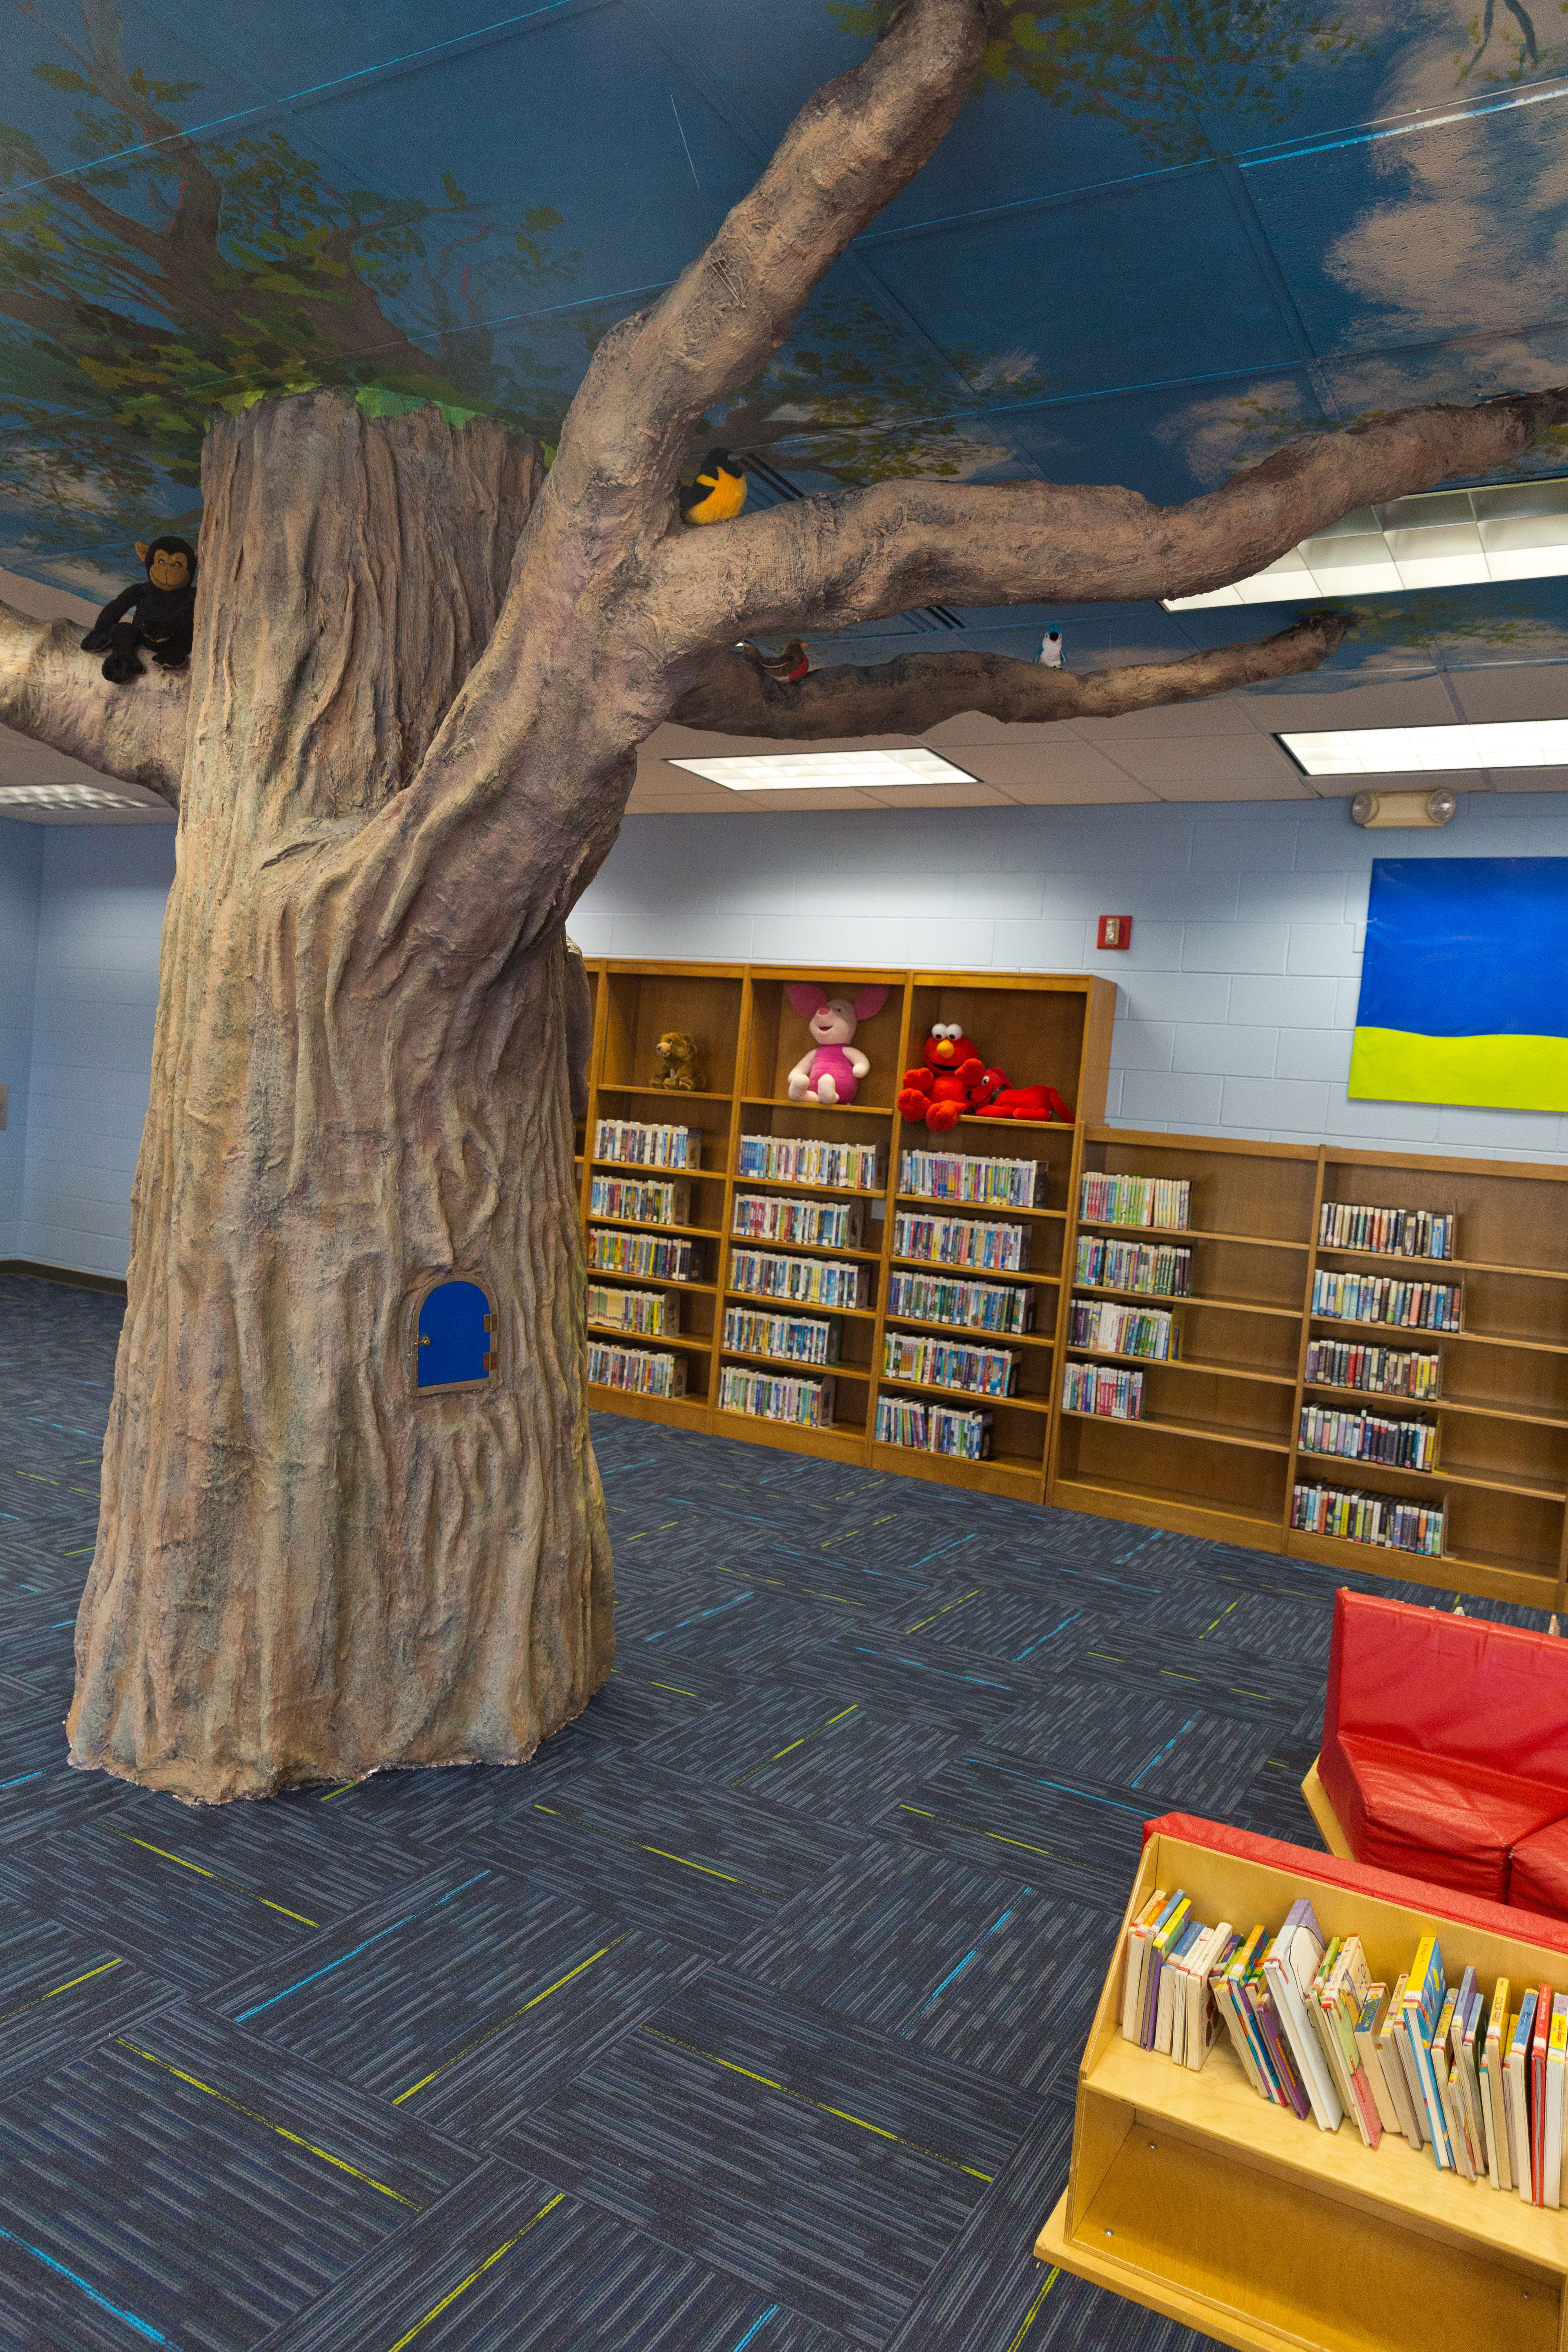 Children's Room of the library